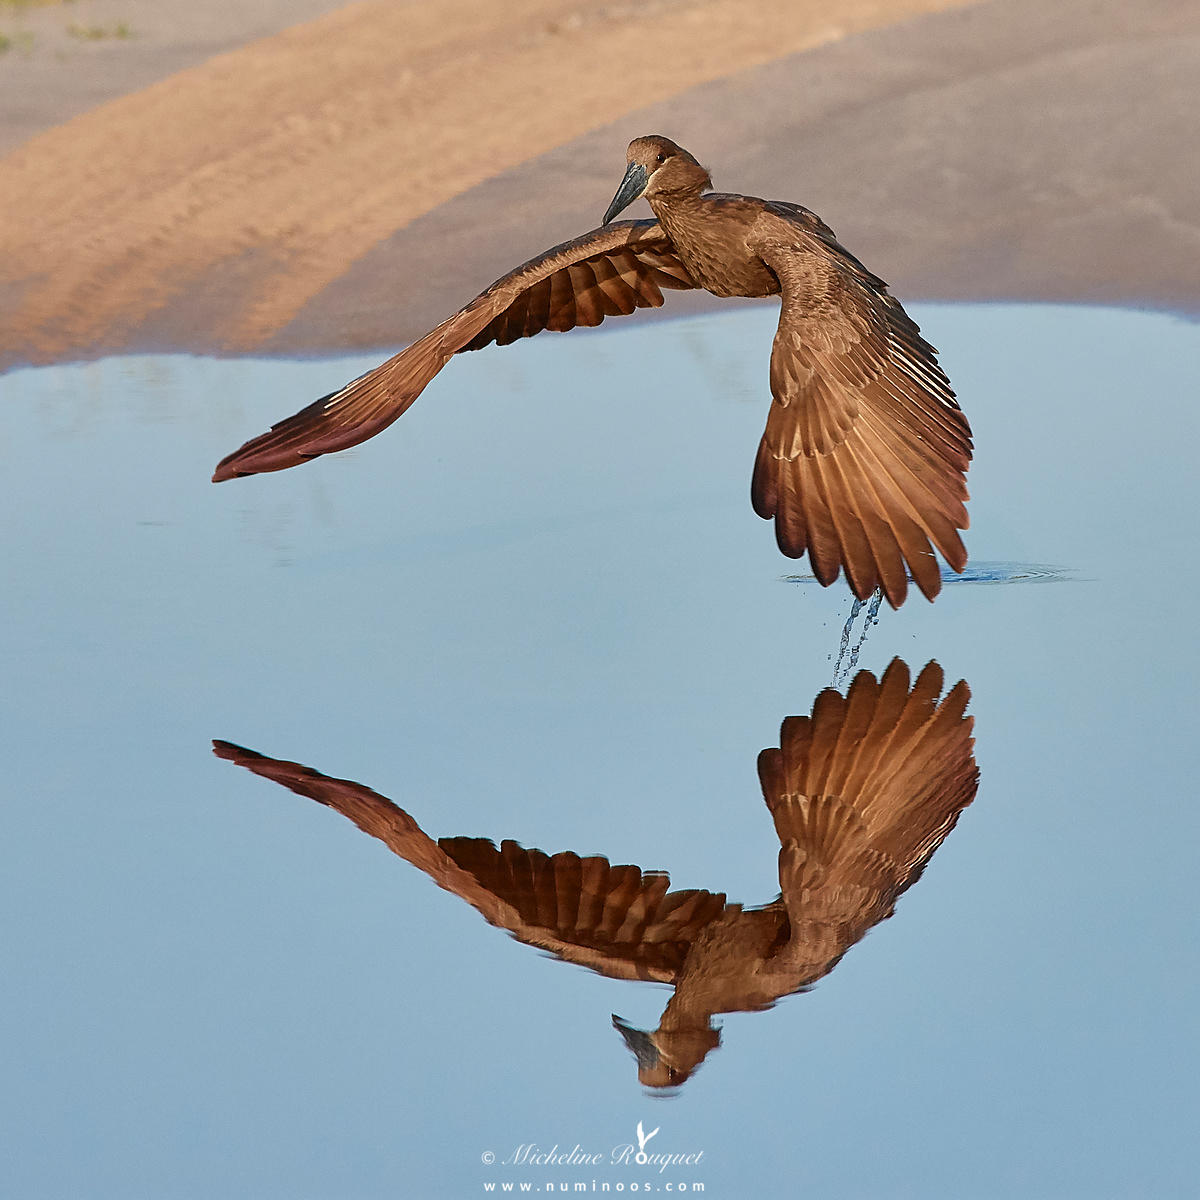 Hamerkop takeoff downstroke in mirrored reflection